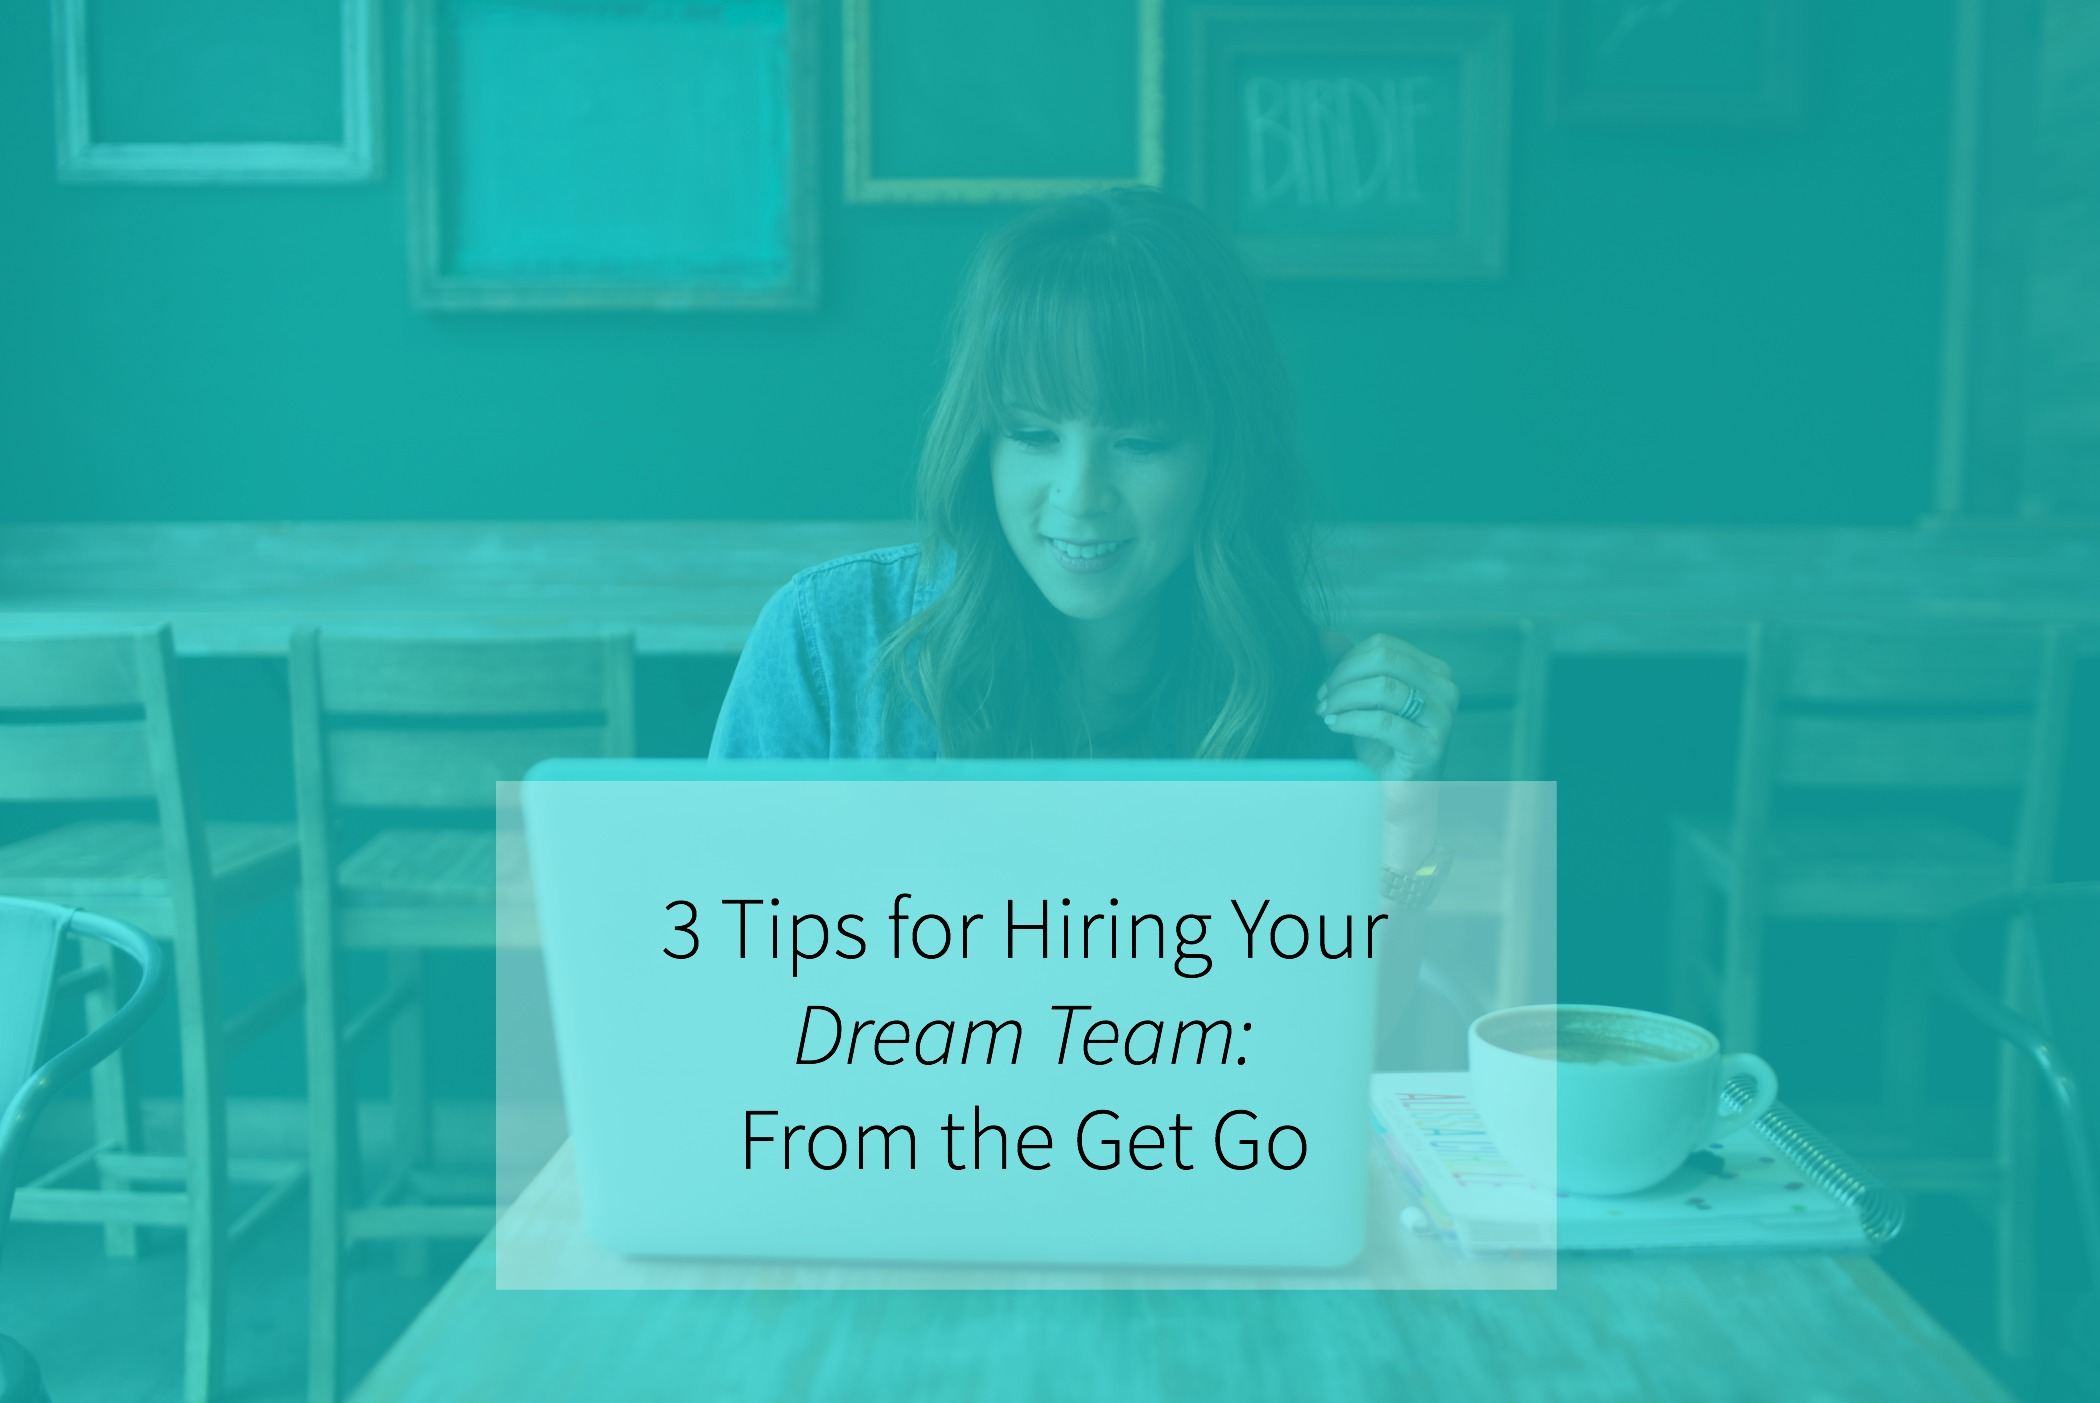 3 Tips for Hiring Your Dream Team